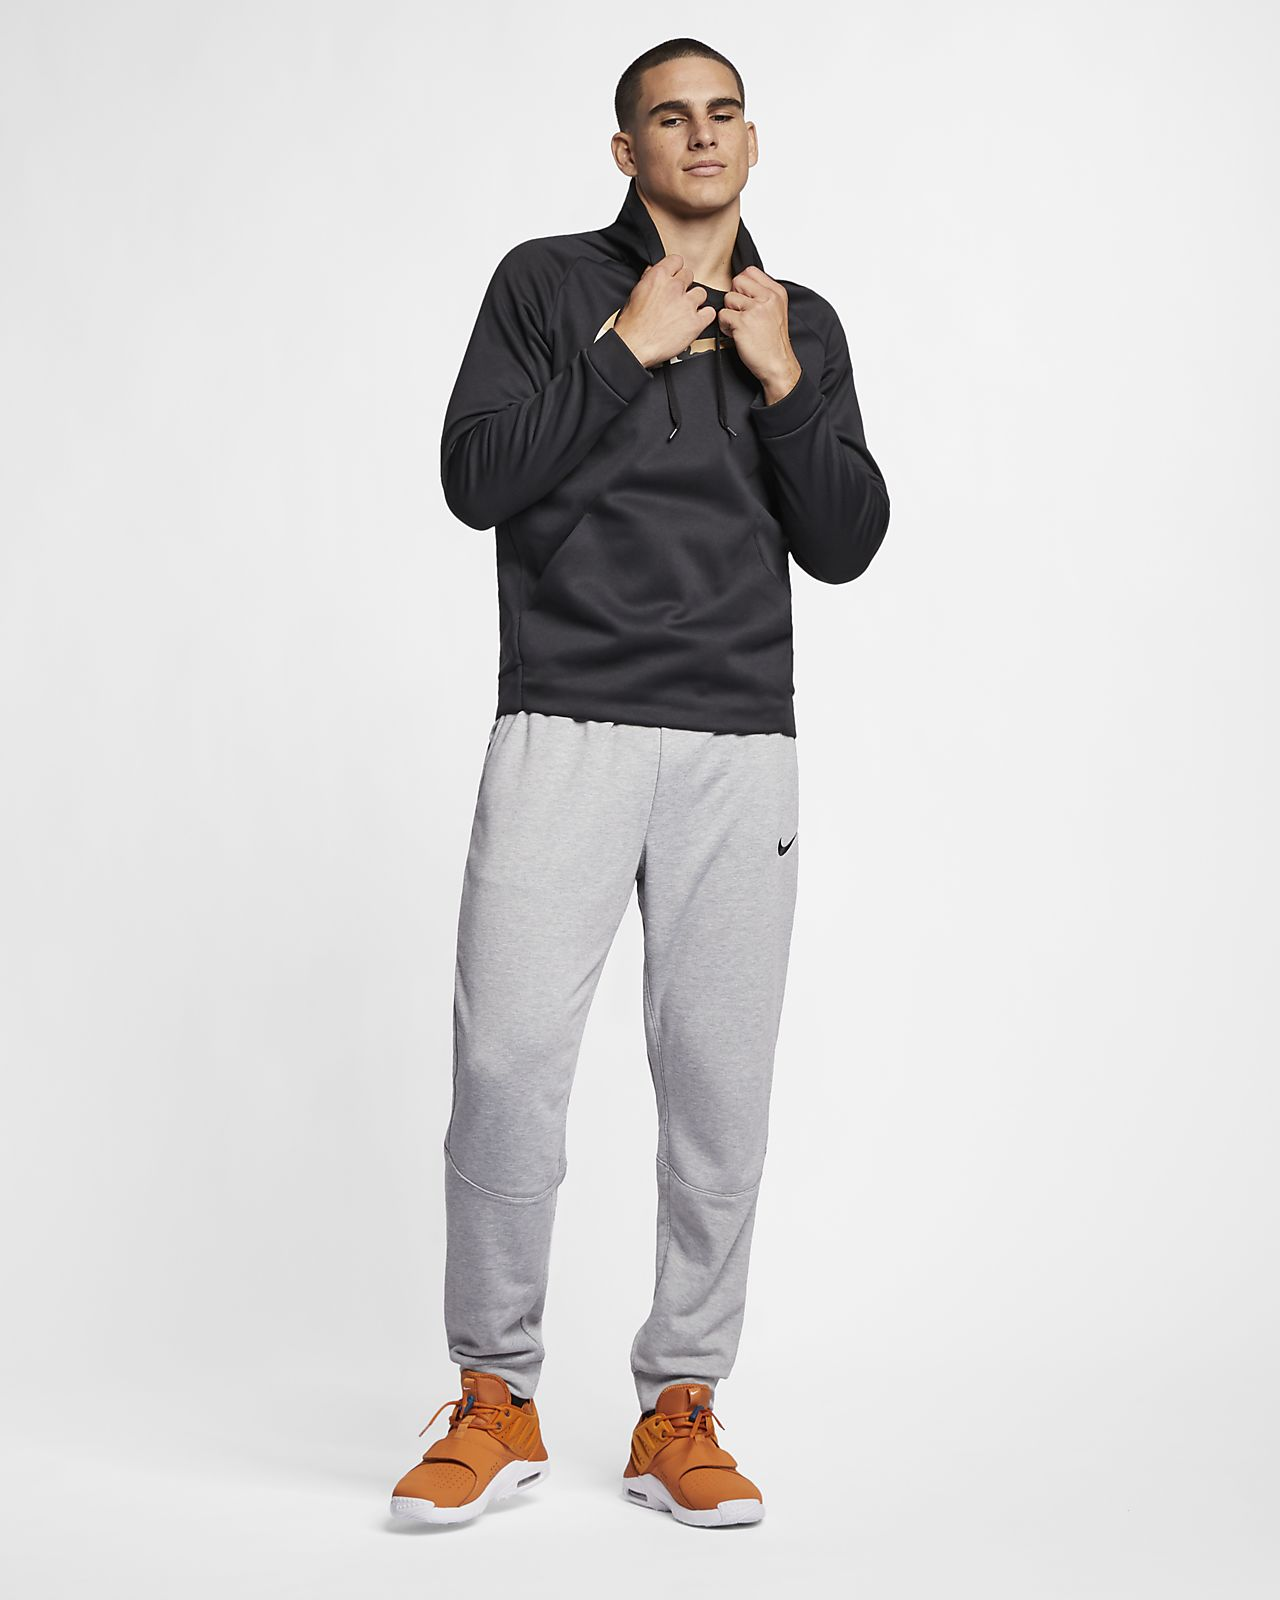 Nike Dri-FIT Pantalons de teixit Fleece cenyits d'entrenament - Home